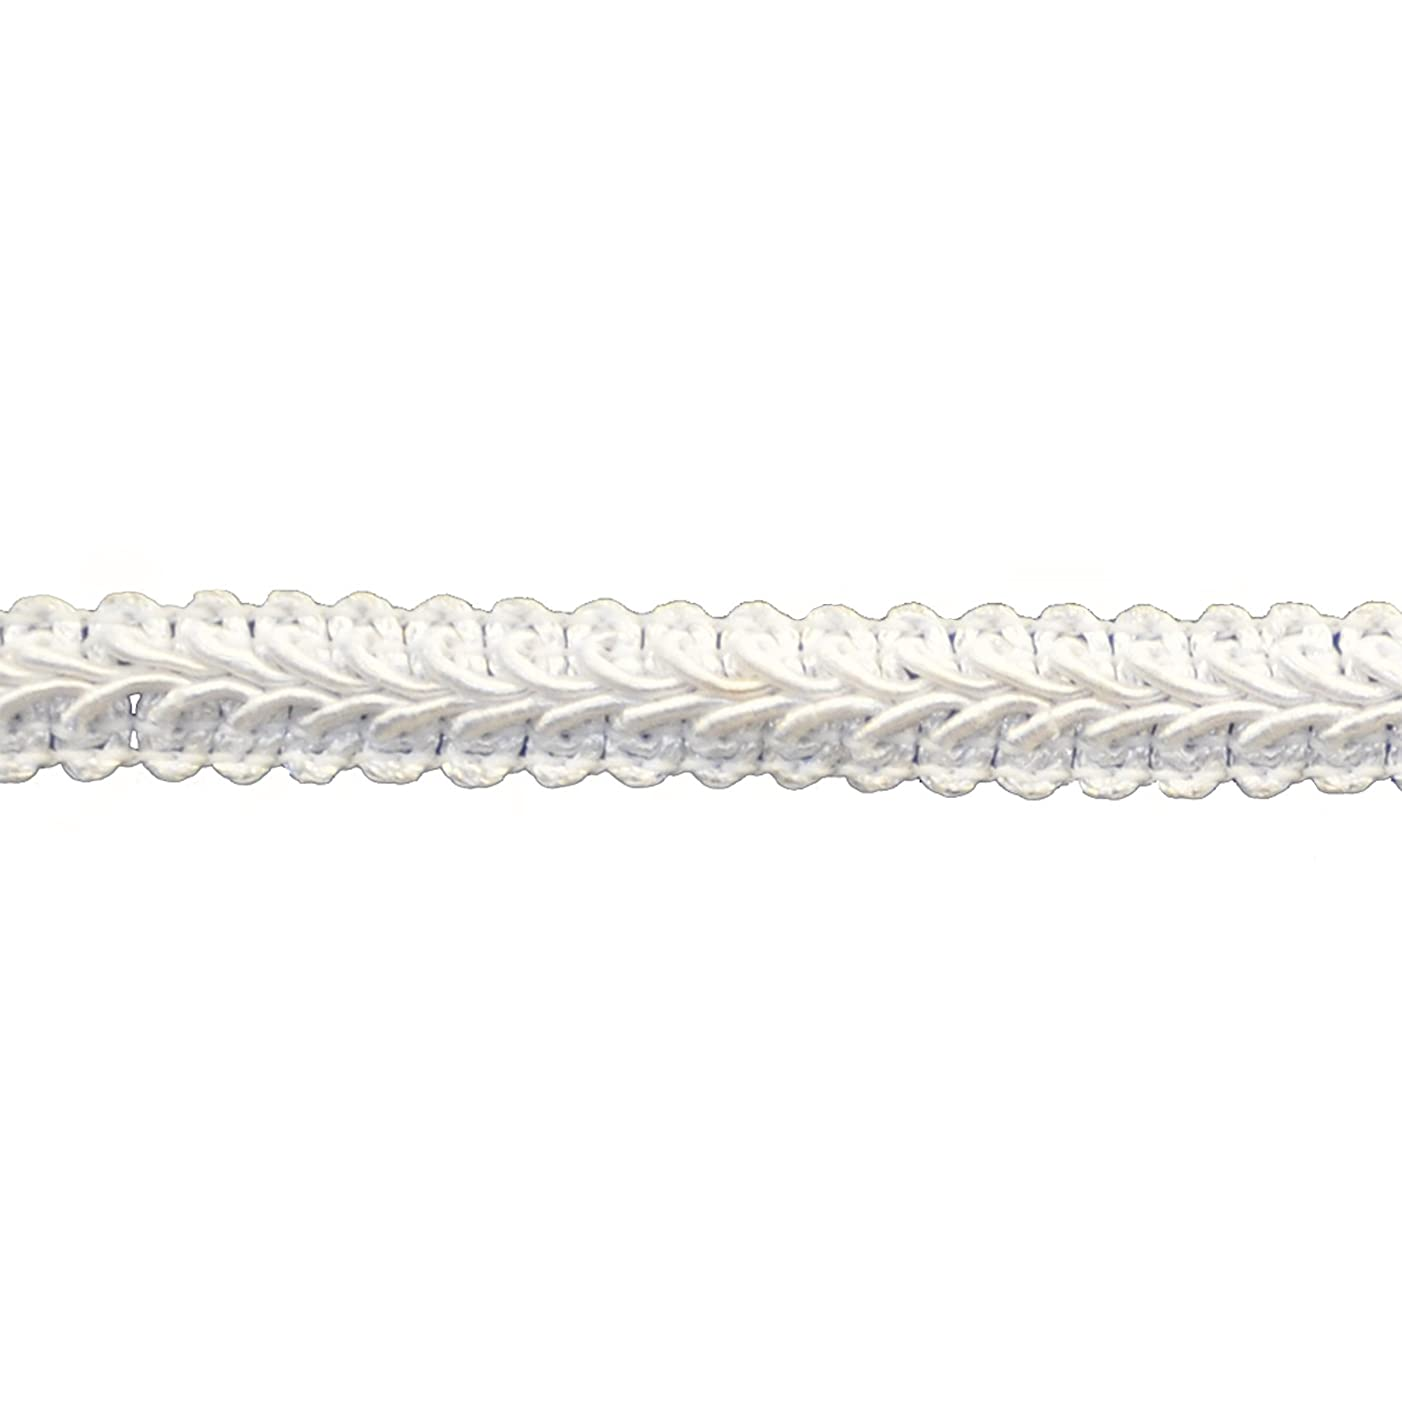 Braid 25-Yard Polyester Roll for Arts and Crafts, 1/2-Inch Wide, White